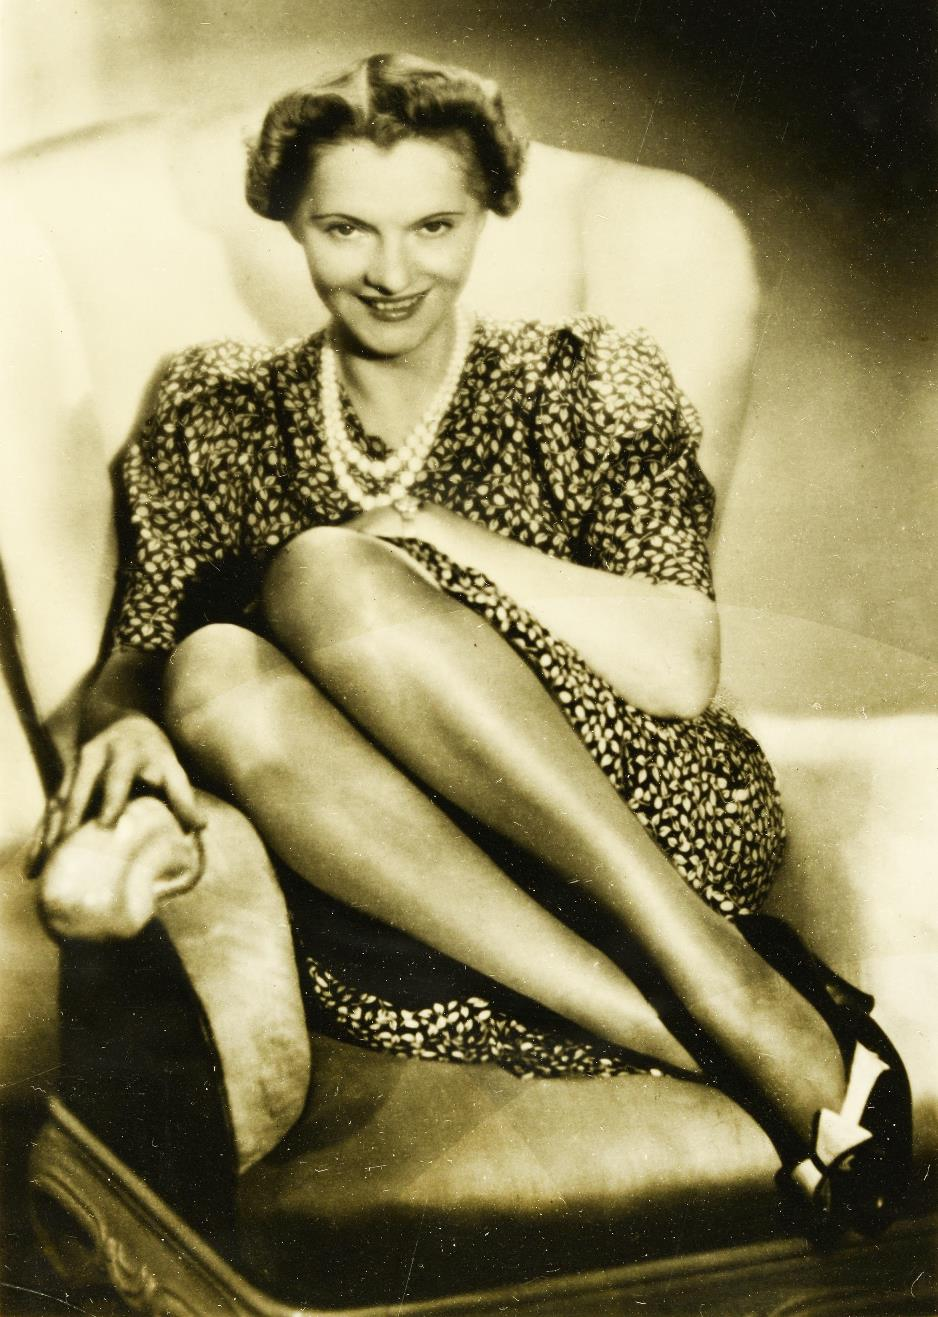 Image of a portrait photograph of a smiling woman - Clara Bauerle - sitting on a chair